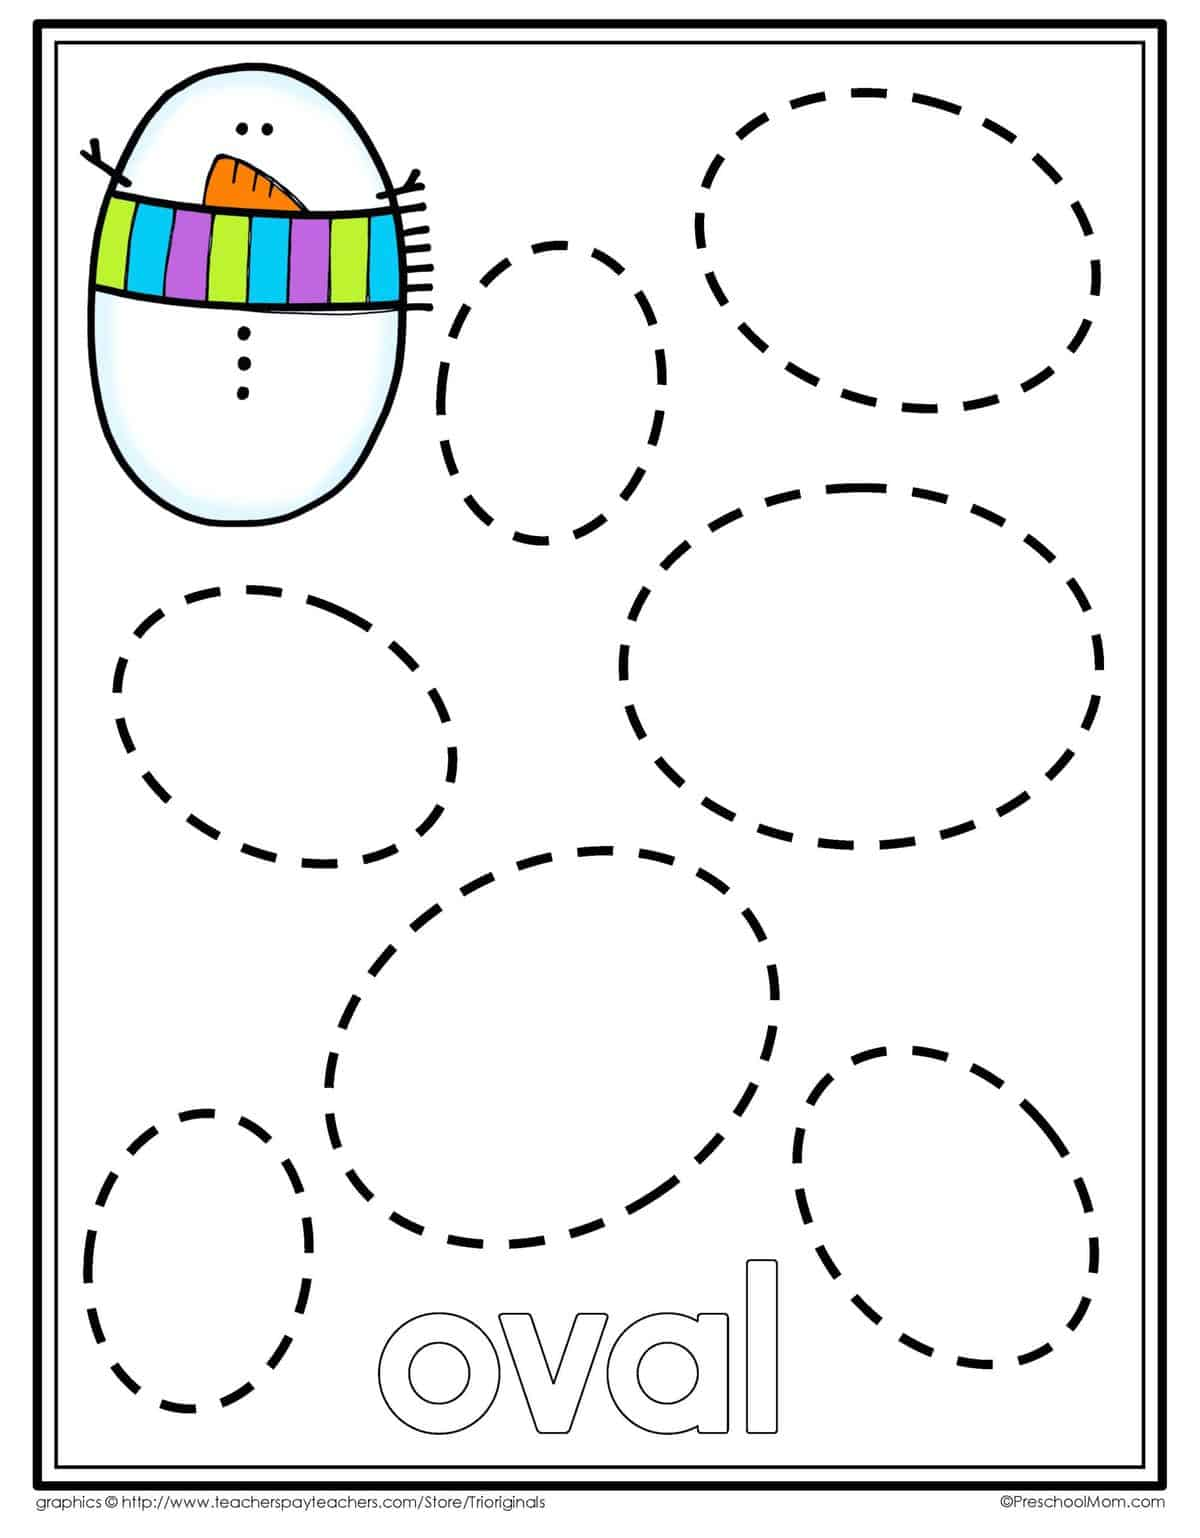 Snowman Counting Worksheet For Preschoolers